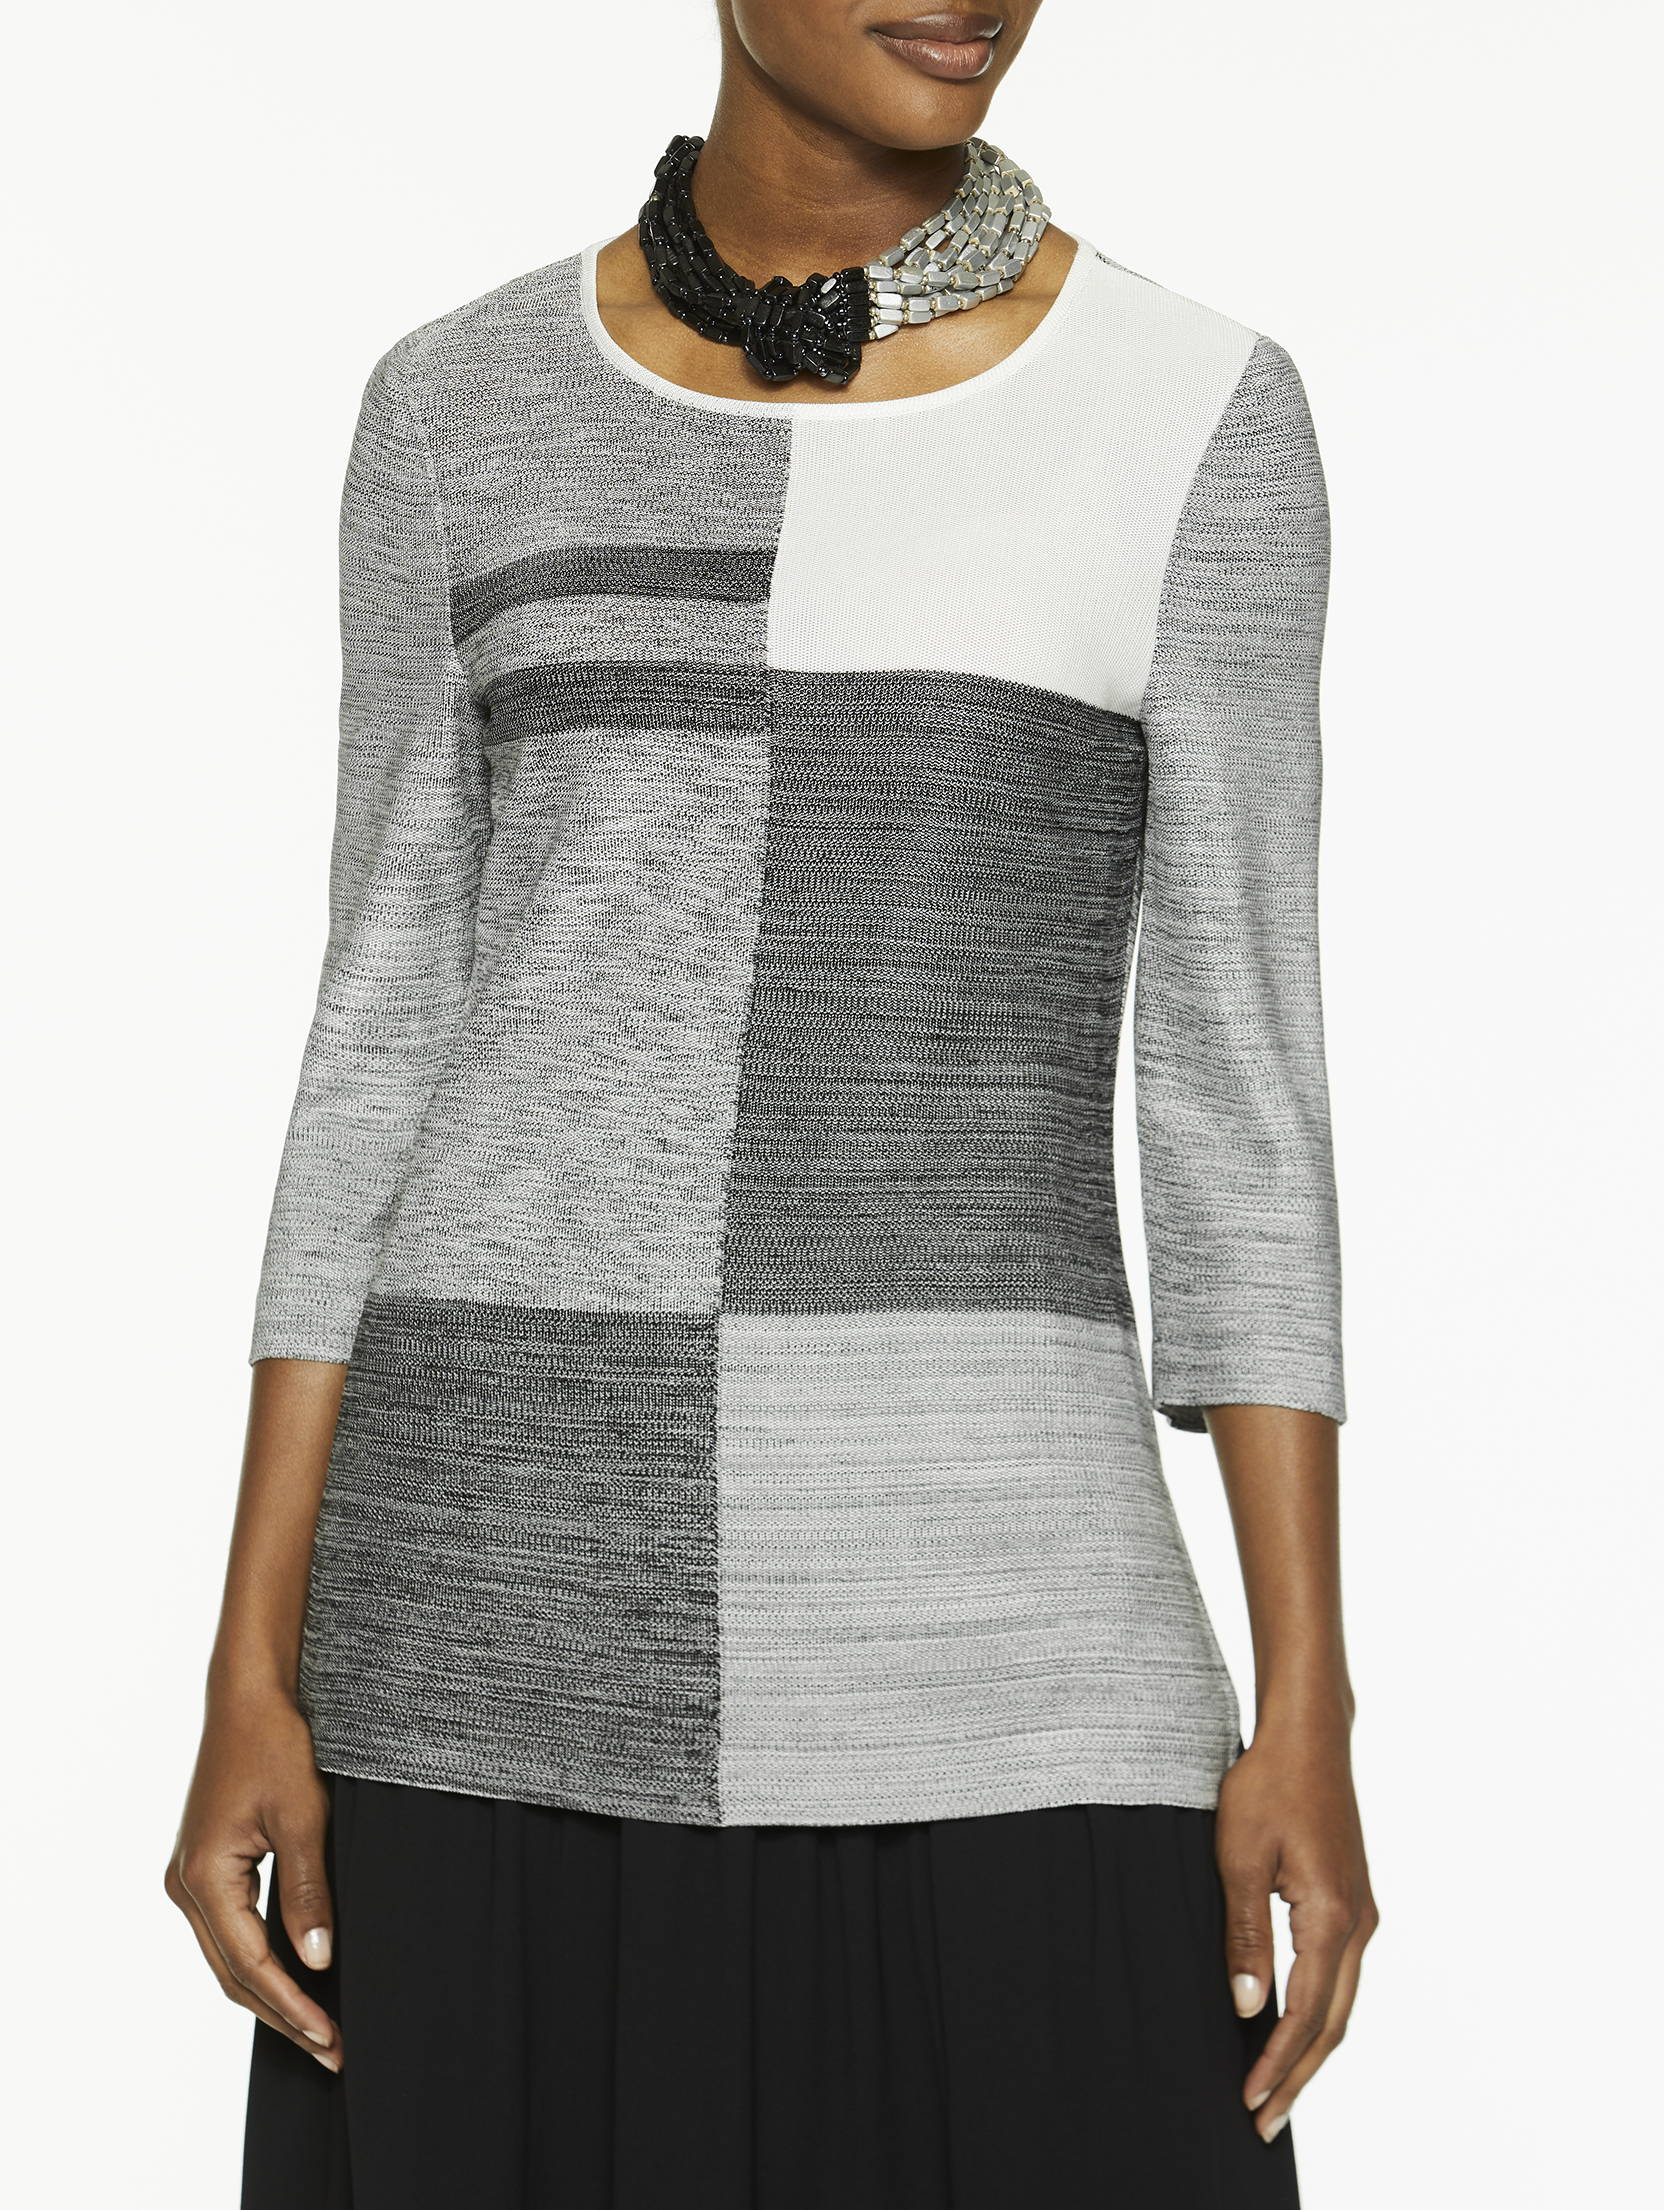 Colorblock Melange Knit Tunic in Ivory and Black